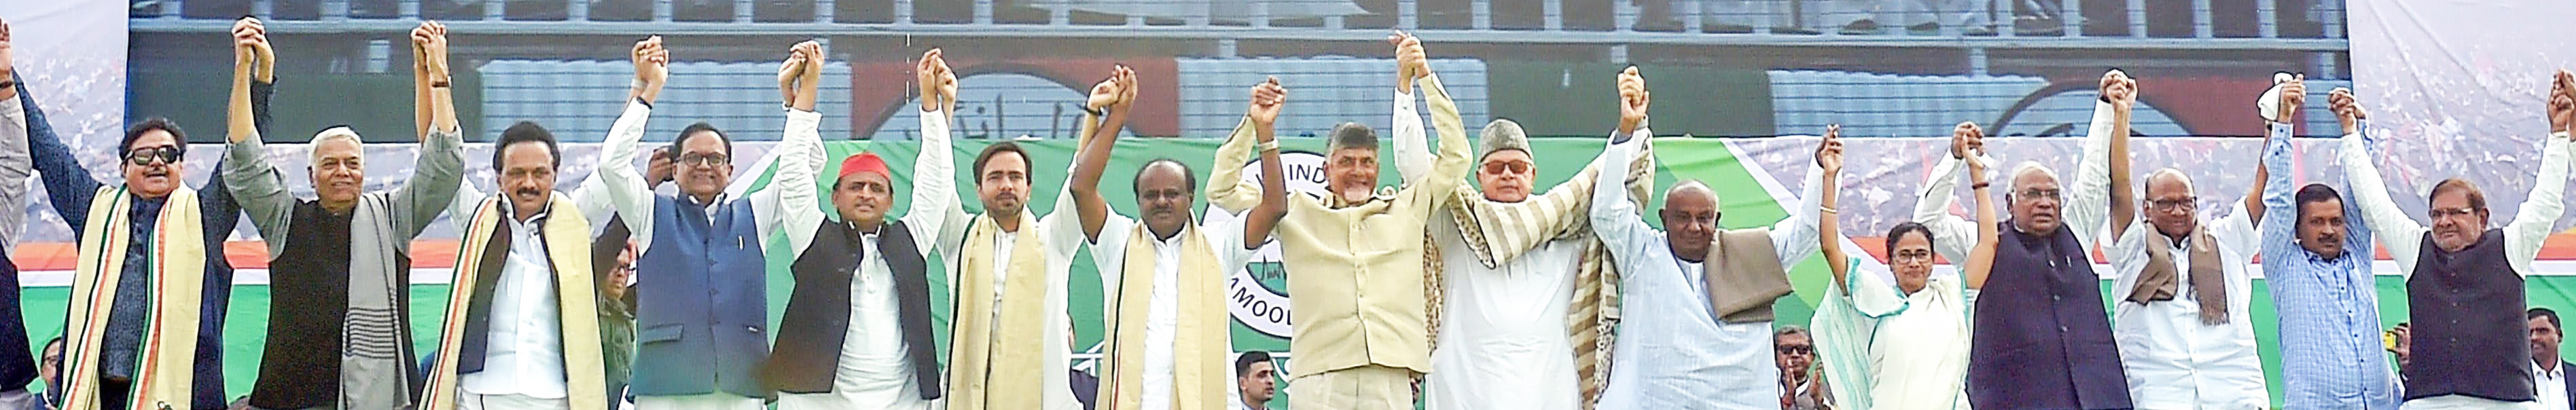 Opposition leaders join hands during Trinamul Congress's mega rally in Calcutta on Saturday.